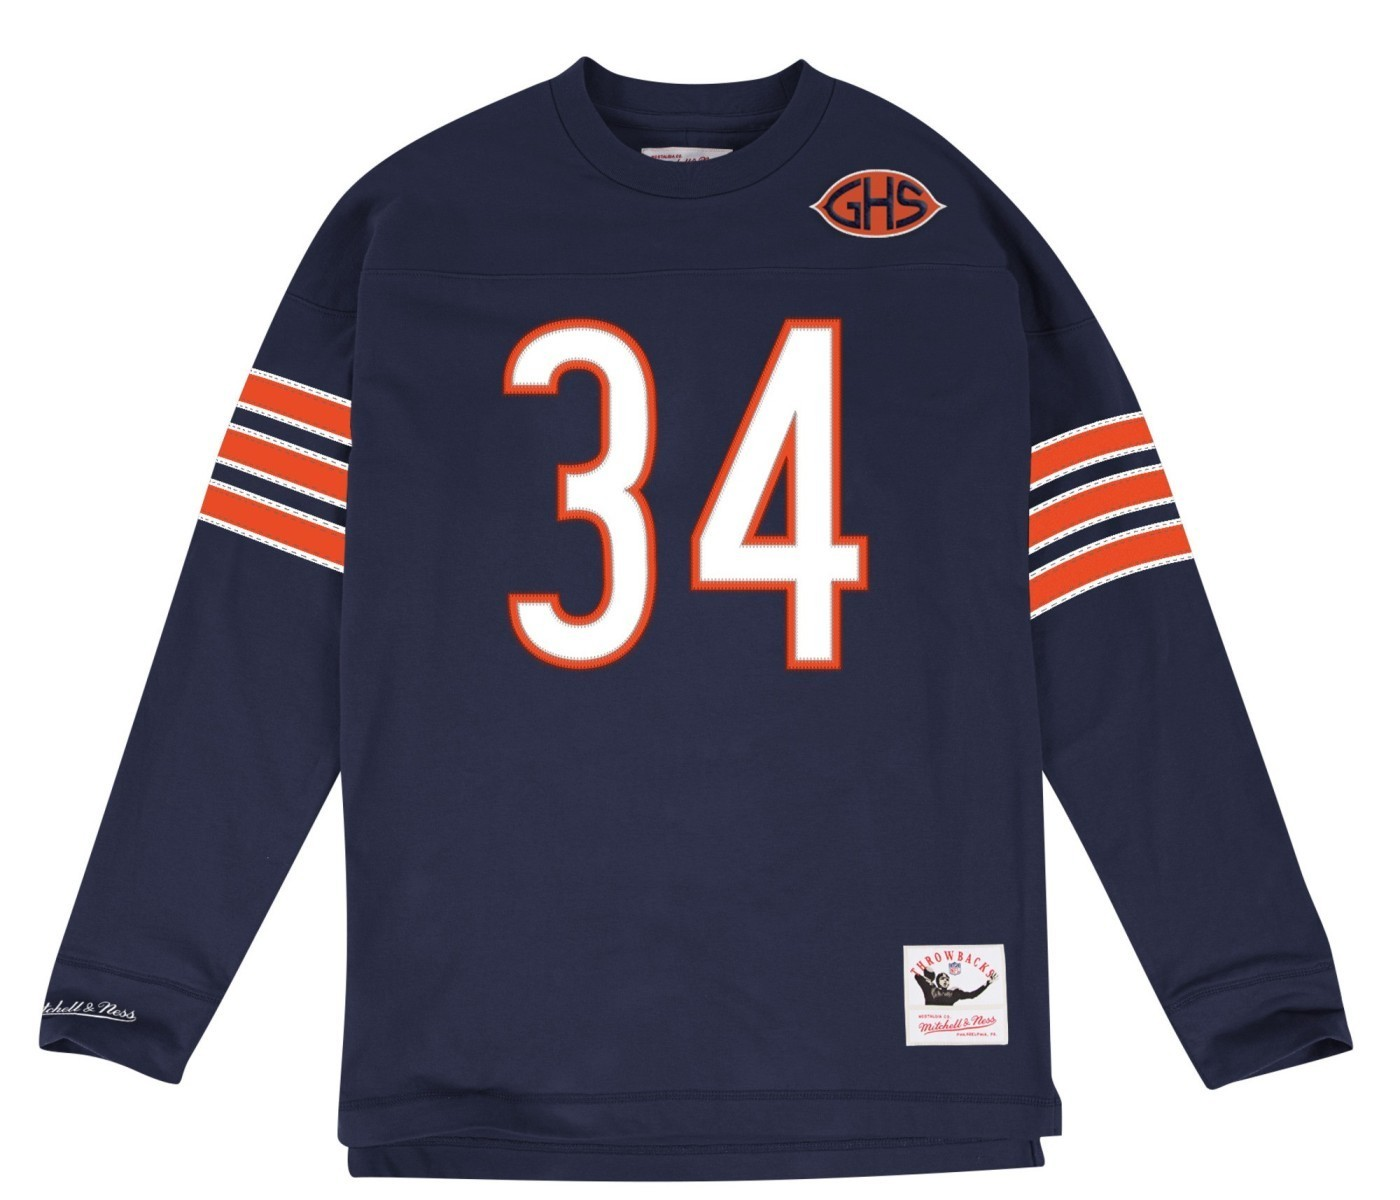 factory authentic 95bb0 ad1cf Details about Walter Payton Chicago Bears Mitchell & Ness NFL Men's